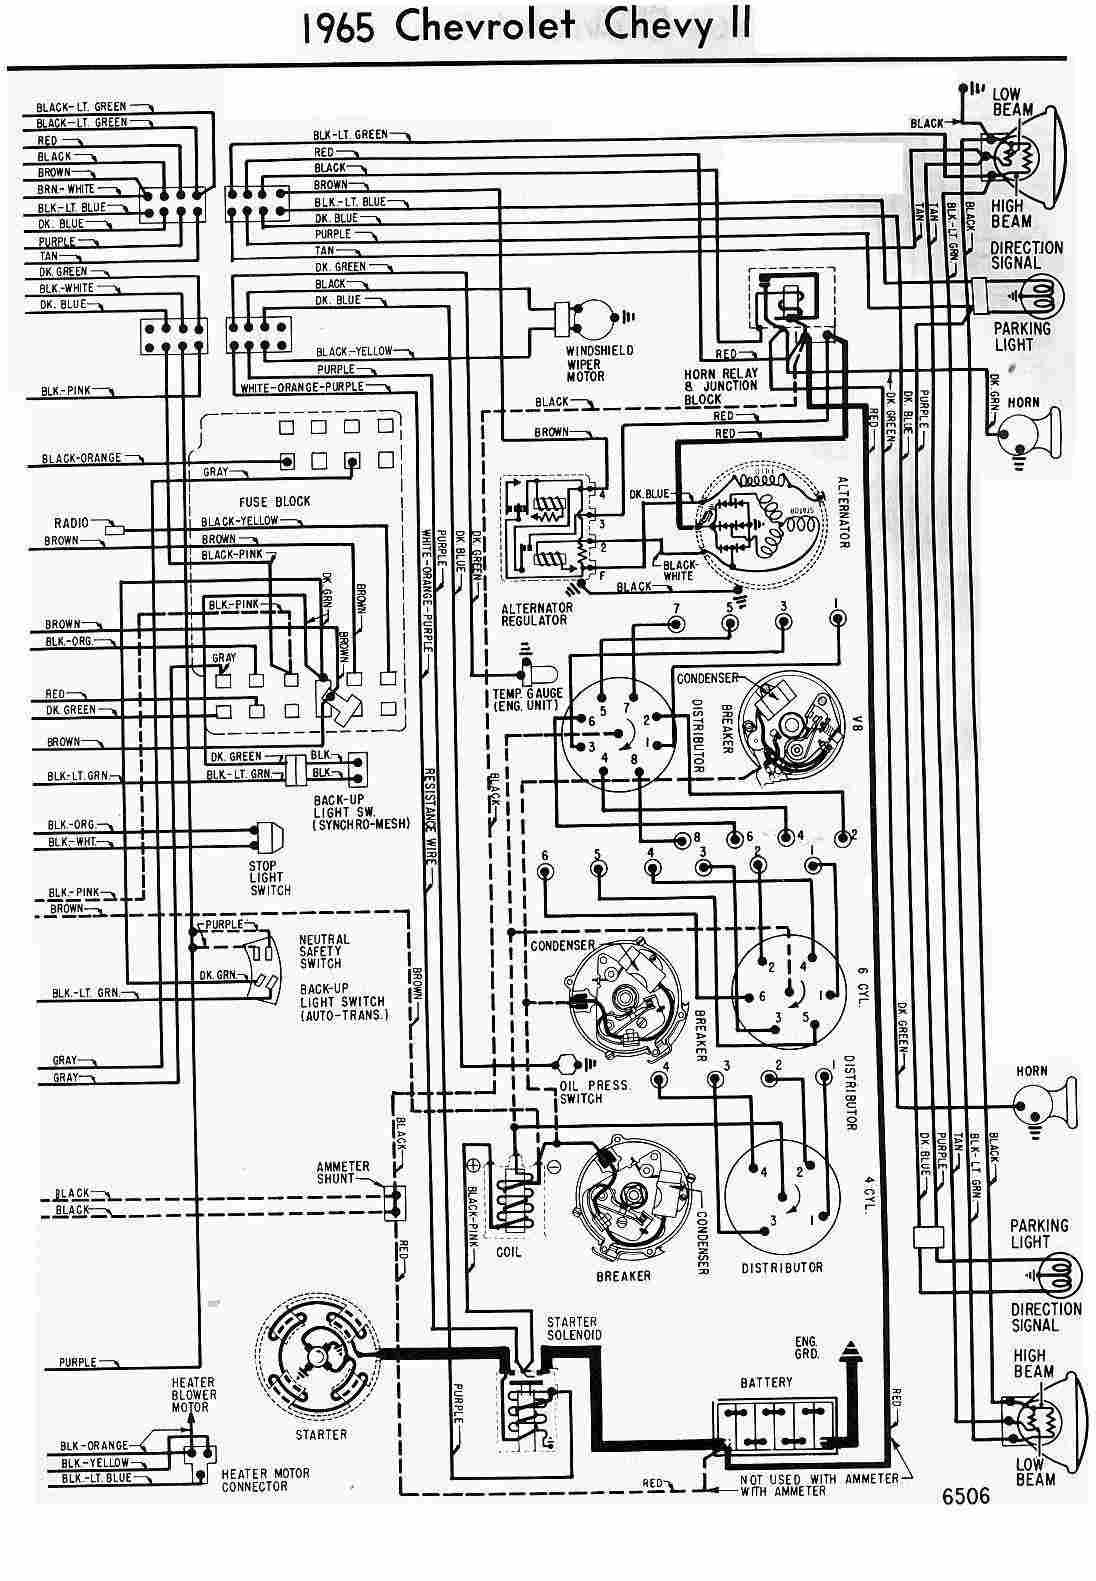 1975 nova wiring diagram wiring diagram dash 2005 chevy impala wiring diagram 1975 impala wiring diagram #9